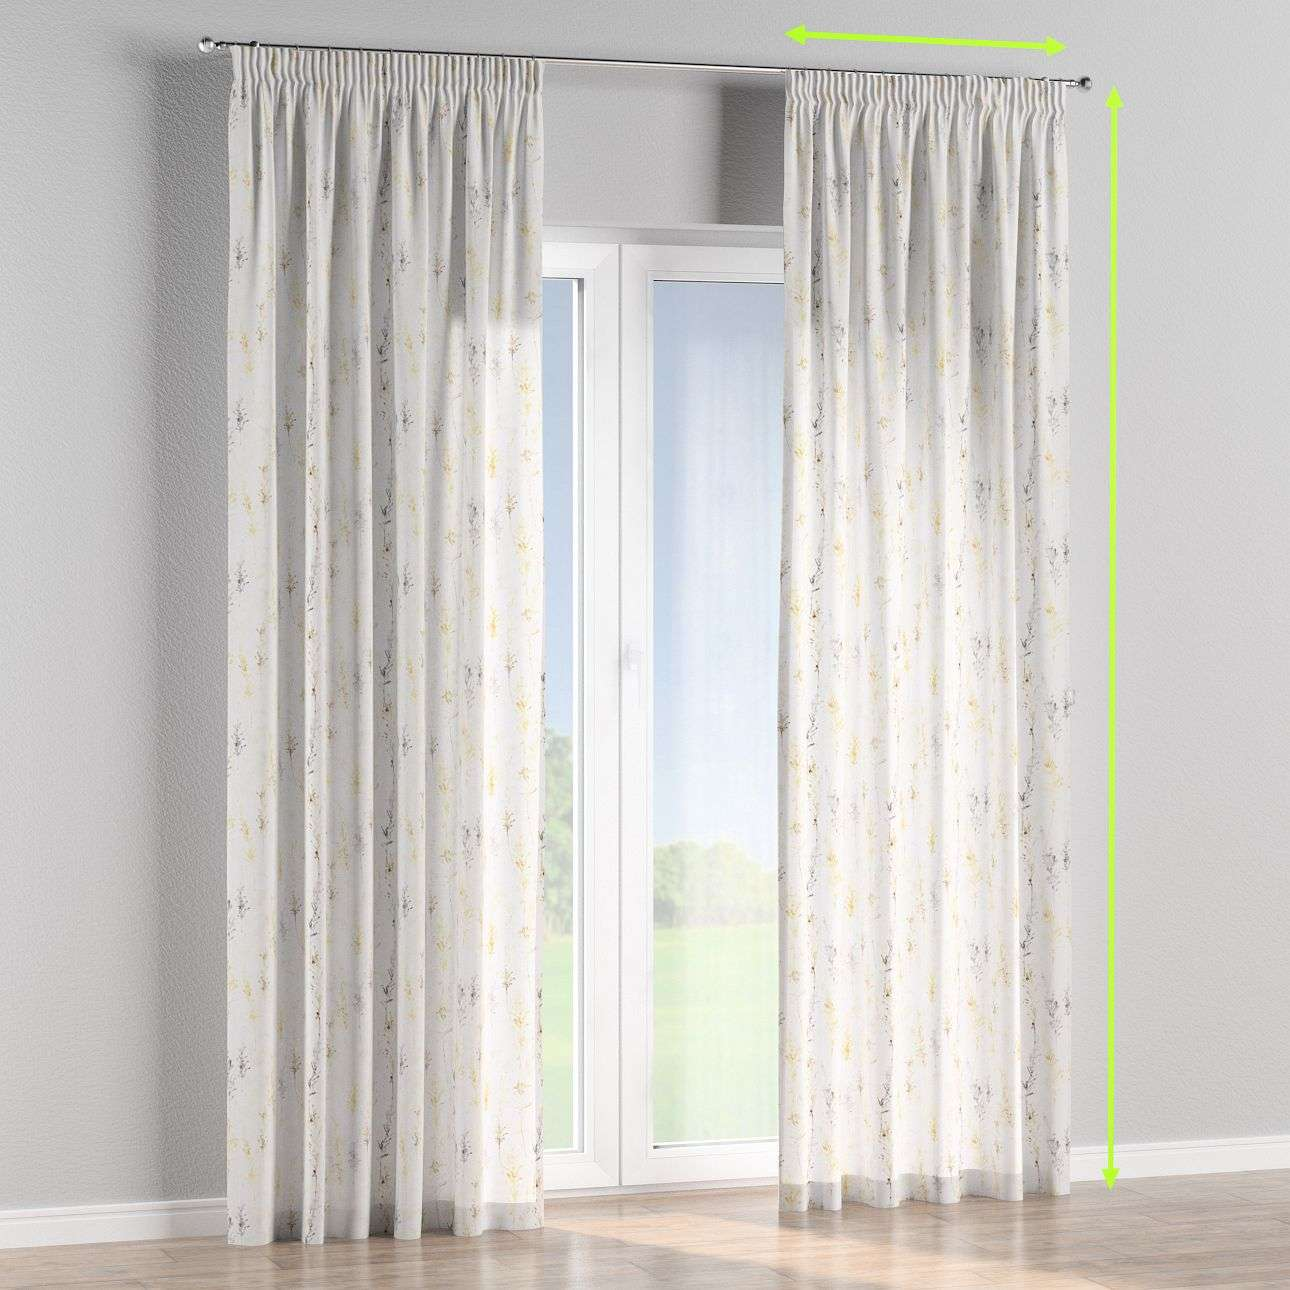 Pencil pleat curtains in collection Acapulco, fabric: 141-36